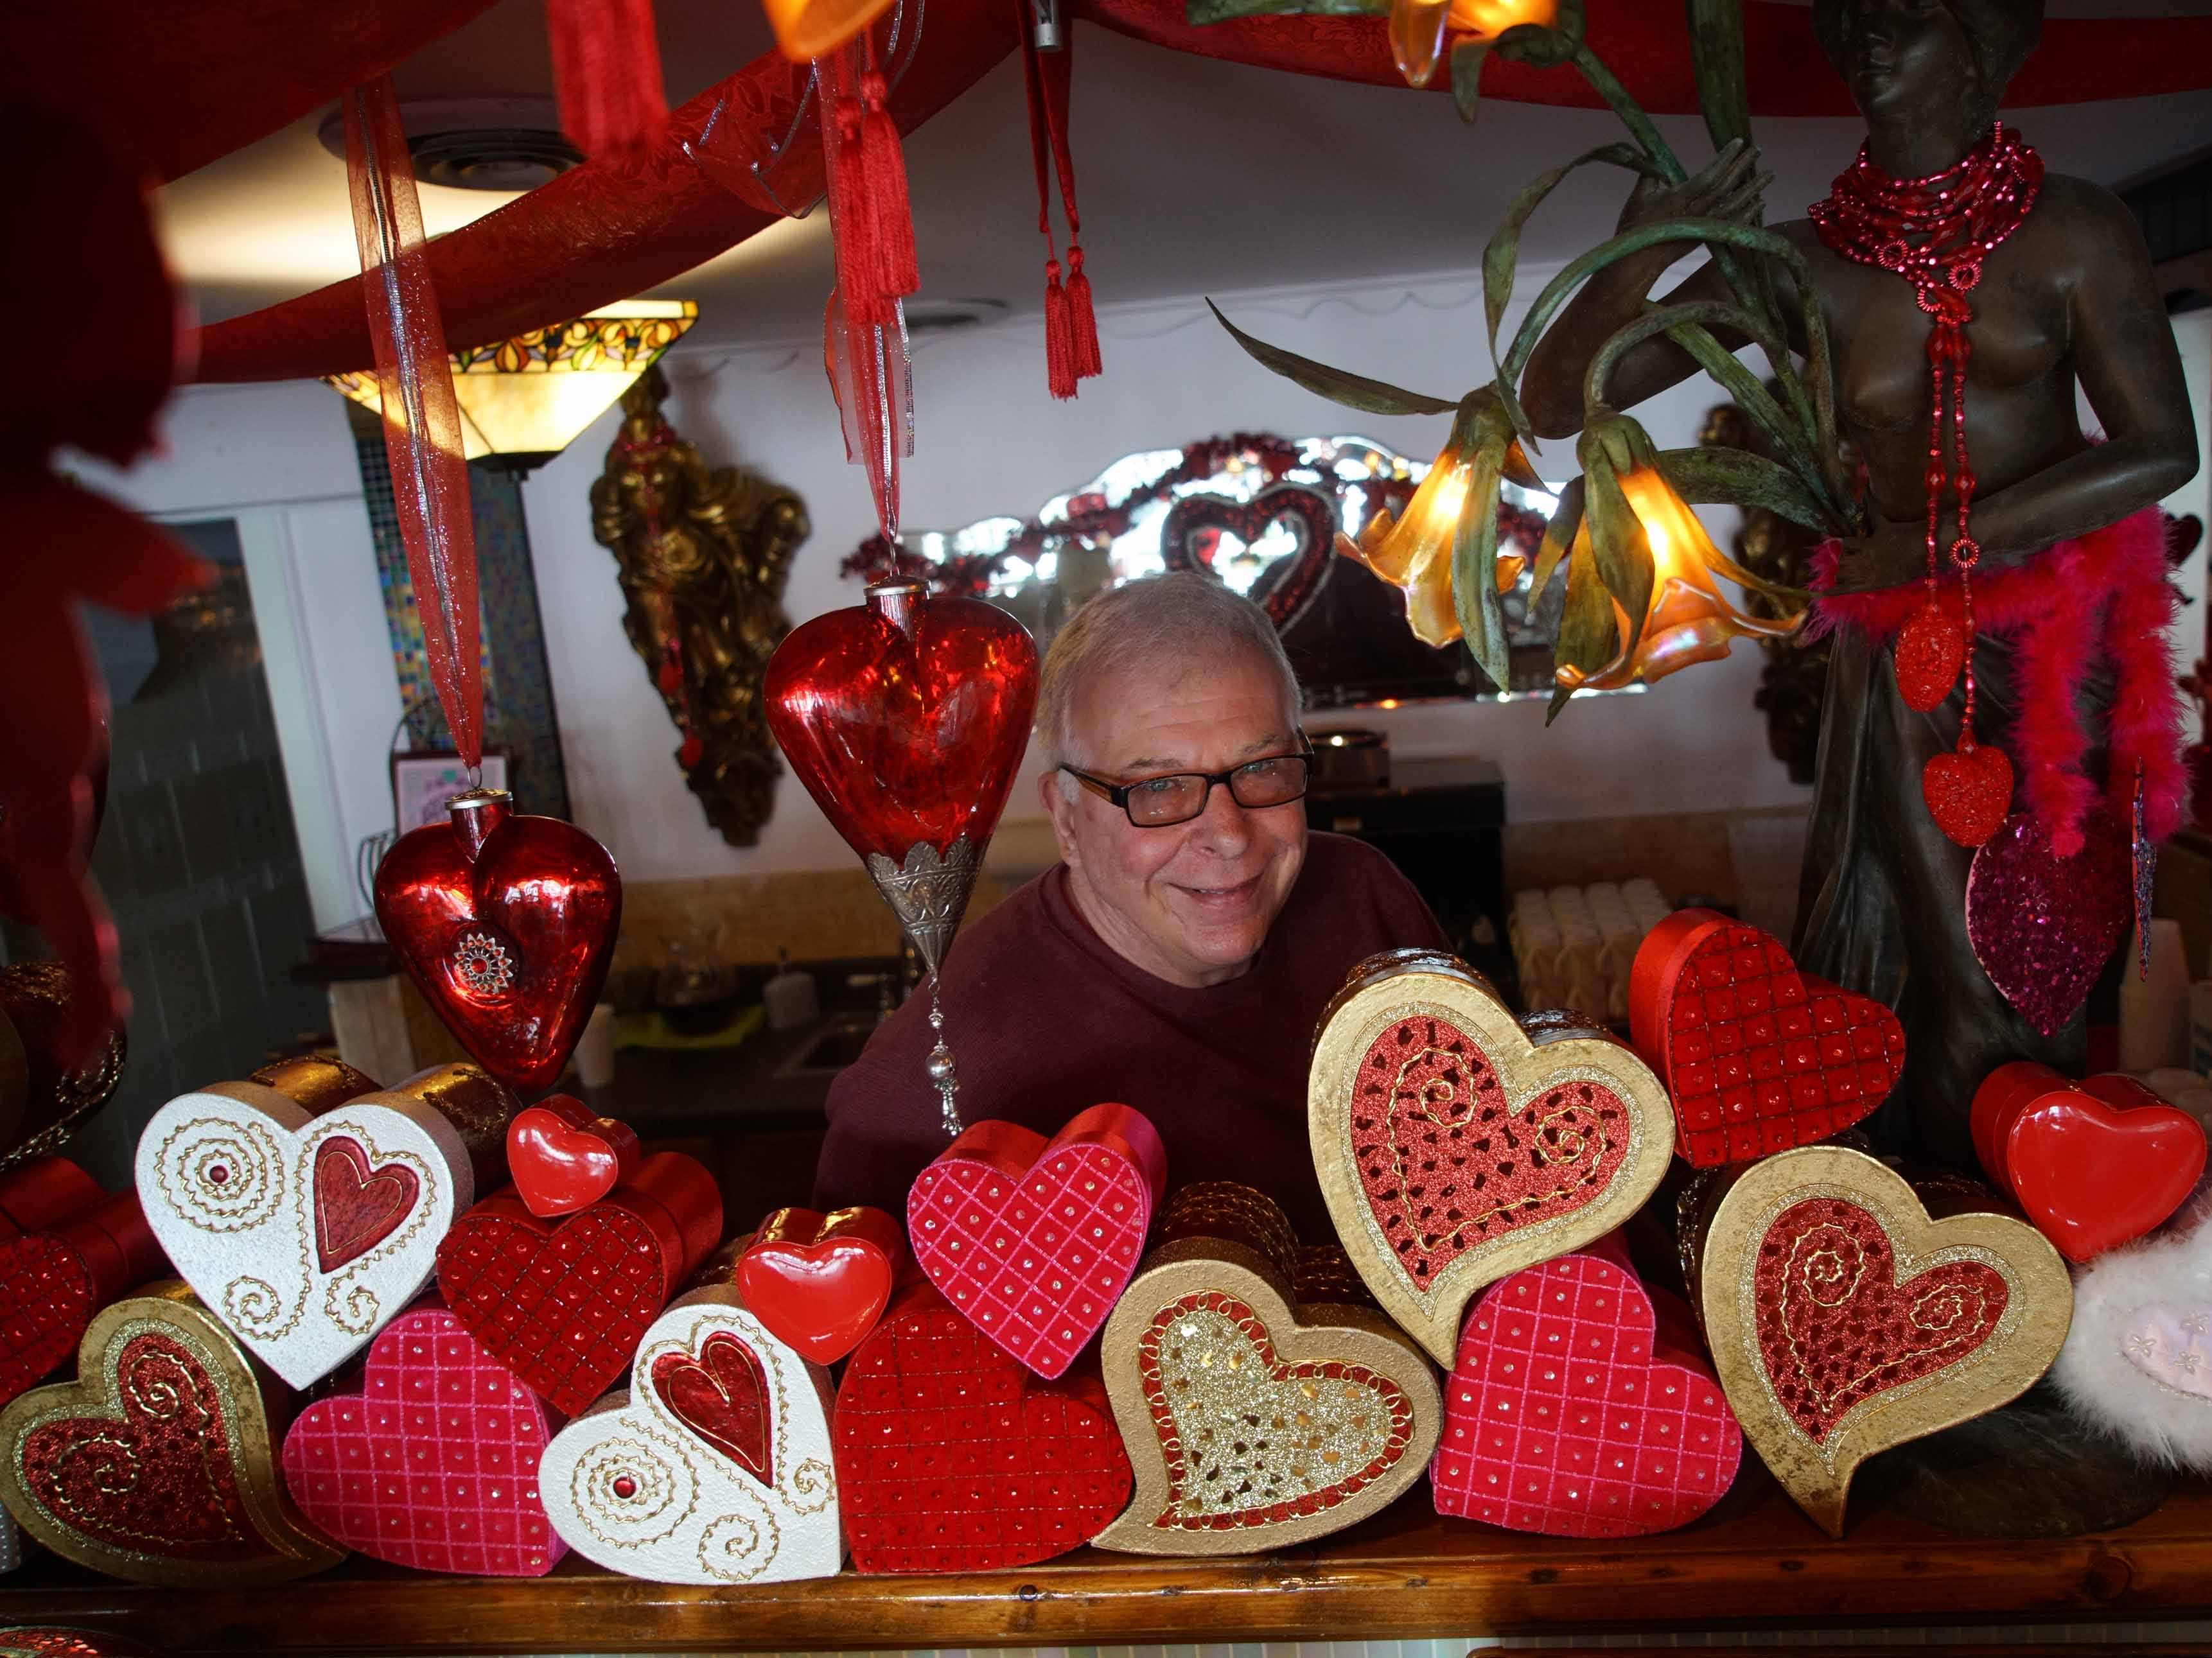 Owner Matt Rydzynski of Serendipity Restaurant decks out his Oak Orchard restaurant of 15 years for Valentine's Day. He starts slowly decorating in January for the romantic holiday to create an atmosphere for his customers to enjoy.